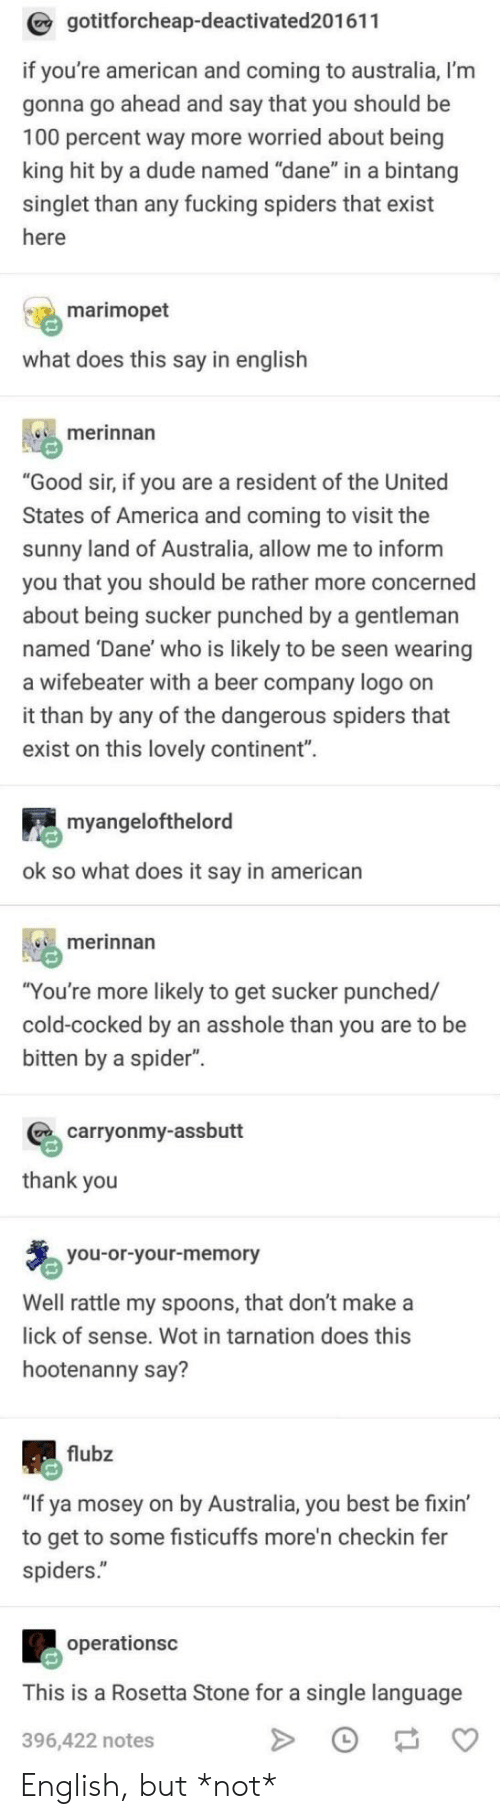 """America, Anaconda, and Beer: gotitforcheap-deactivated201611  if you're american and coming to australia, I'm  gonna go ahead and say that you should be  100 percent way more worried about being  king hit by a dude named """"dane"""" in a bintang  singlet than any fucking spiders that exist  here  marimopet  what does this say in english  merinnan  """"Good sir, if you are a resident of the United  States of America and coming to visit the  sunny land of Australia, allow me to inform  you that you should be rather more concerned  about being sucker punched by a gentleman  named Dane' who is likely to be seen wearing  a wifebeater with a beer company logo on  it than by any of the dangerous spiders that  exist on this lovely continent"""".  myangelofthelord  ok so what does it say in american  merinnan  """"You're more likely to get sucker punched/  cold-cocked by an asshole than you are to be  bitten by a spider"""".  carryonmy-assbutt  thank you  you-or-your-memory  Well rattle my spoons, that don't makea  lick of sense. Wot in tarnation does this  hootenanny say?  flubz  """"If ya mosey on by Australia, you best be fixin'  to get to some fisticuffs more'n checkin fer  spiders.""""  operationsc  This is a Rosetta Stone for a single language  396,422 notes English, but *not*"""